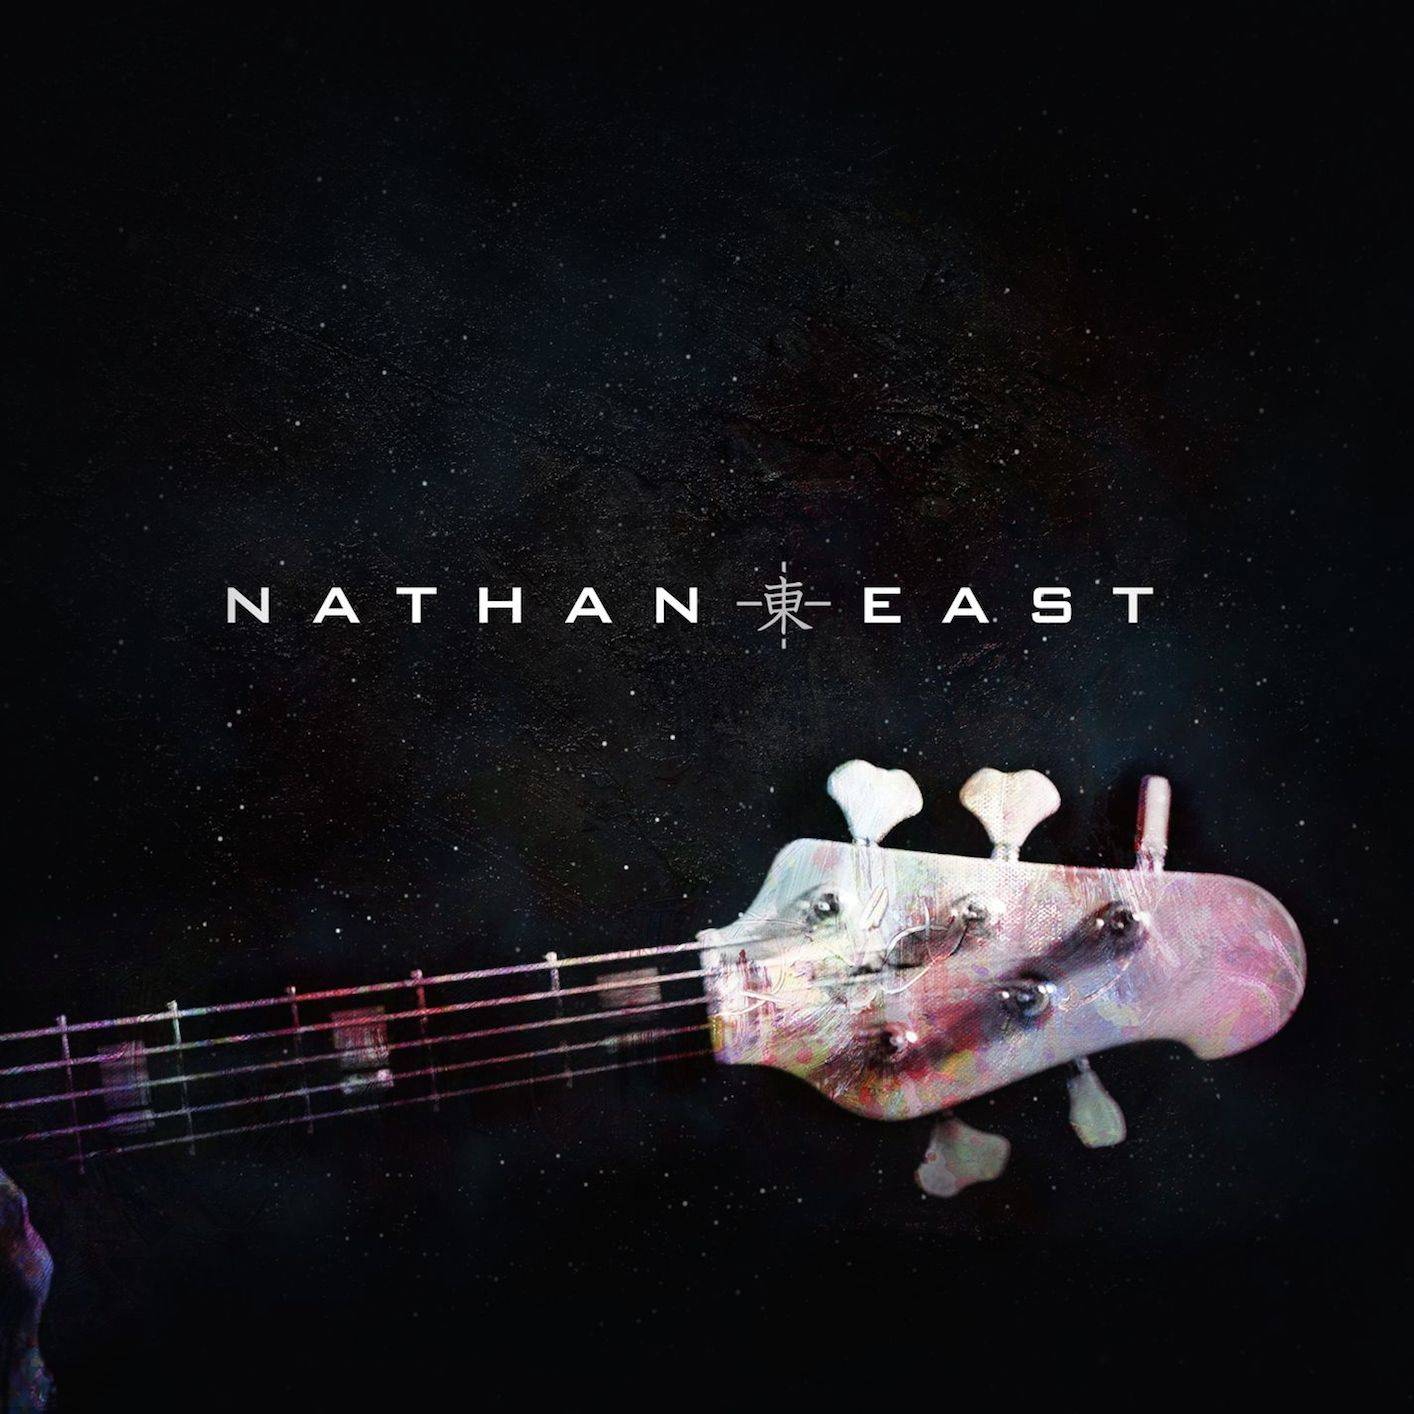 Nathan East - Nathan East (2014) [Official Digital Download]